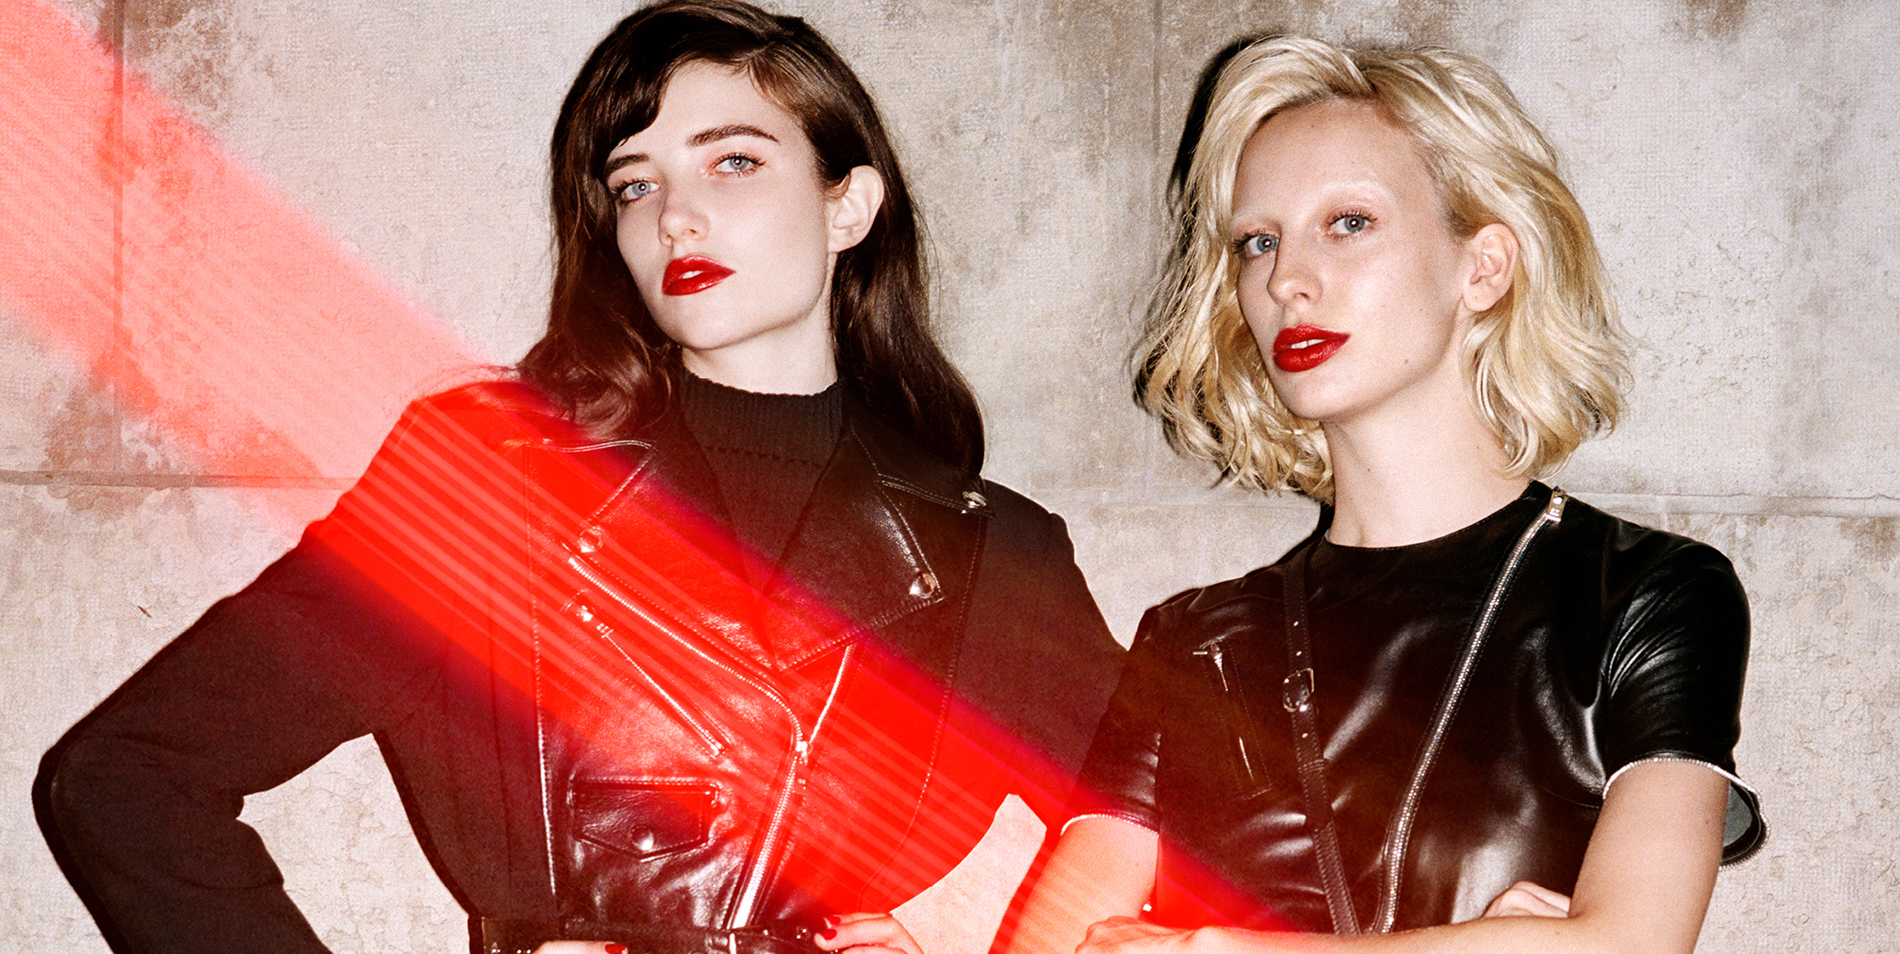 Sonia Rykiel Fall 2018 Ad Campaign by Peter Miles